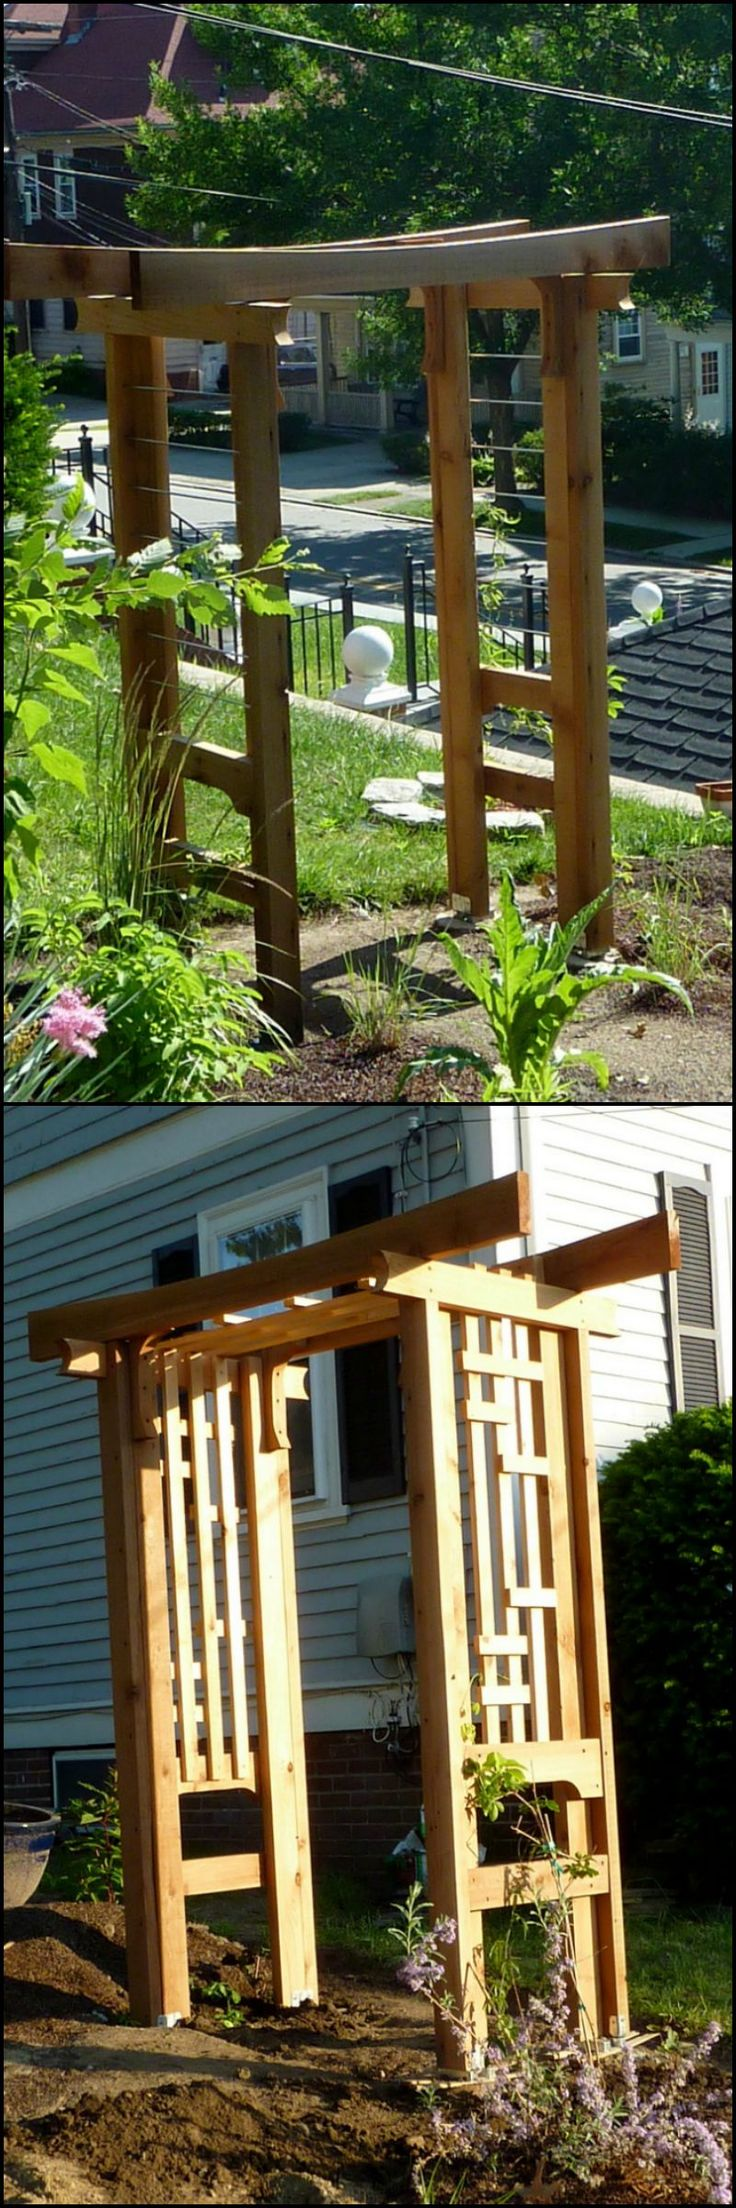 Custom trellis to match pergola landscapes by earth design - How To Build An Arbor Trellis Http Theownerbuildernetwork Co Ktt4 An